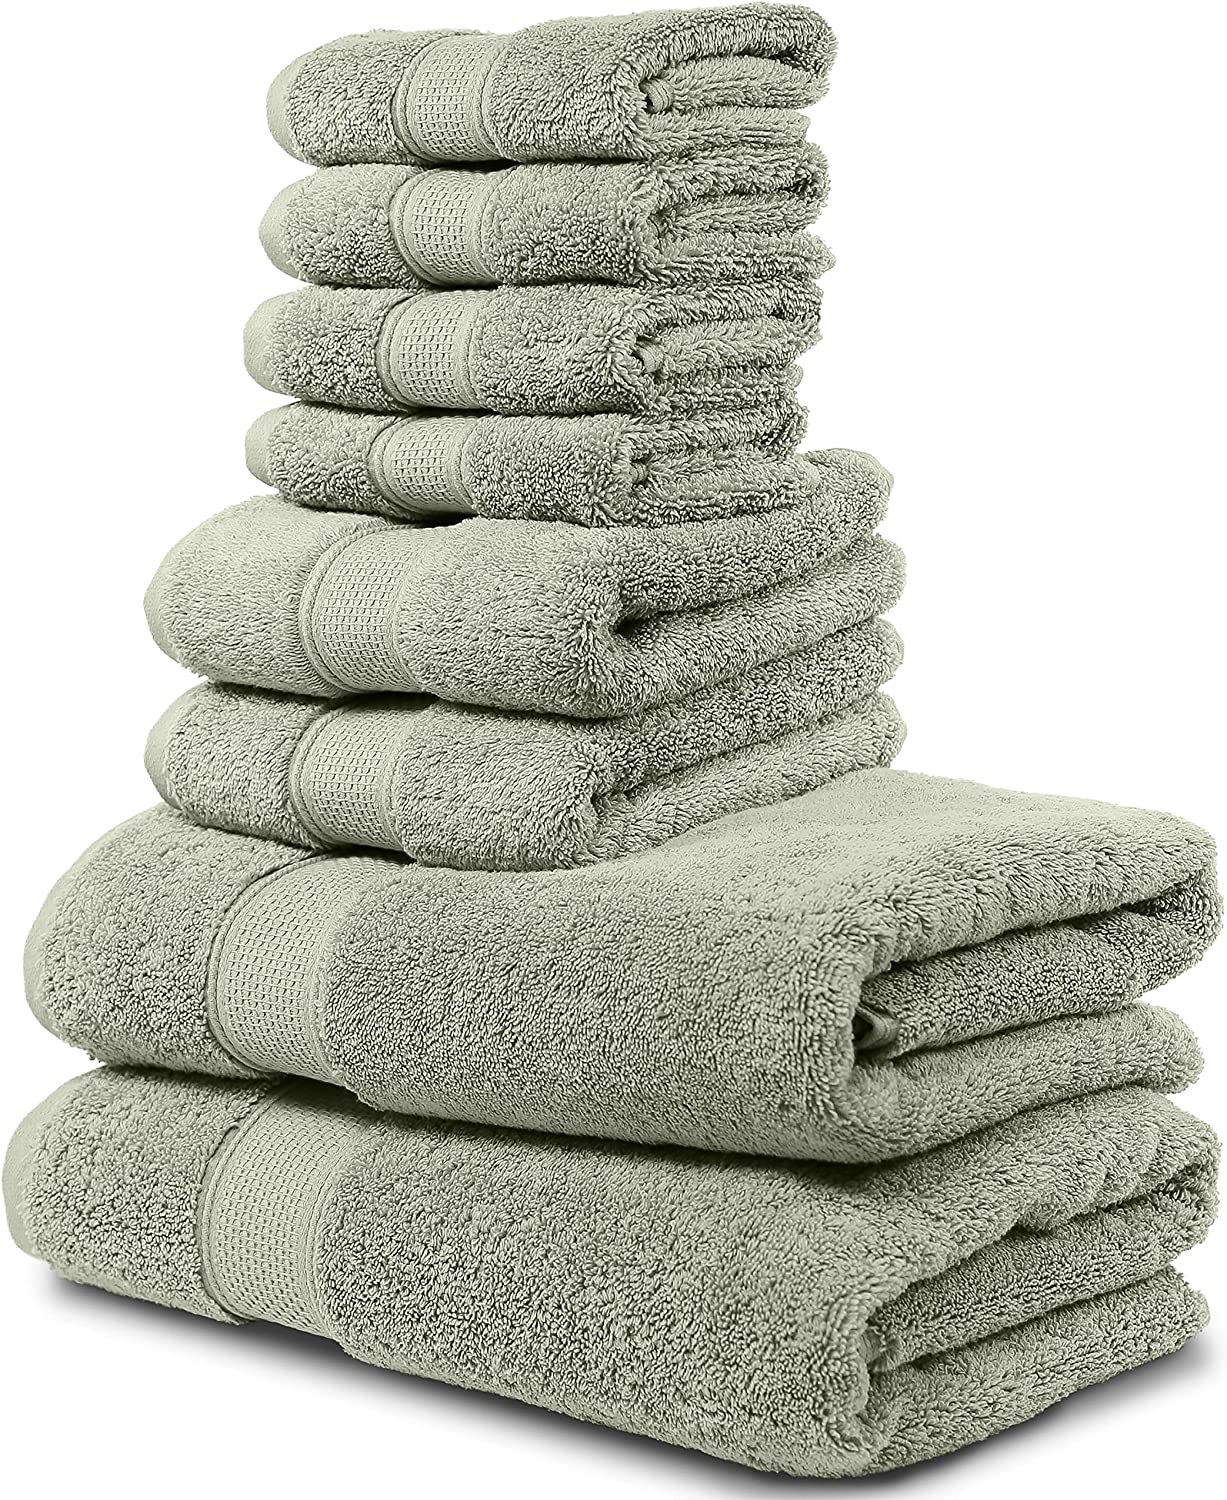 """Maura 8 Piece Bath Towel Set.2 Extra Large 30""""x56"""" Premium Turkish Bath Towels, 2 Hand Towels, 4 Washcloths. Thick, Soft, Plush and Highly Absorbent Luxury Hotel & Spa Quality Towels -Sage Green"""